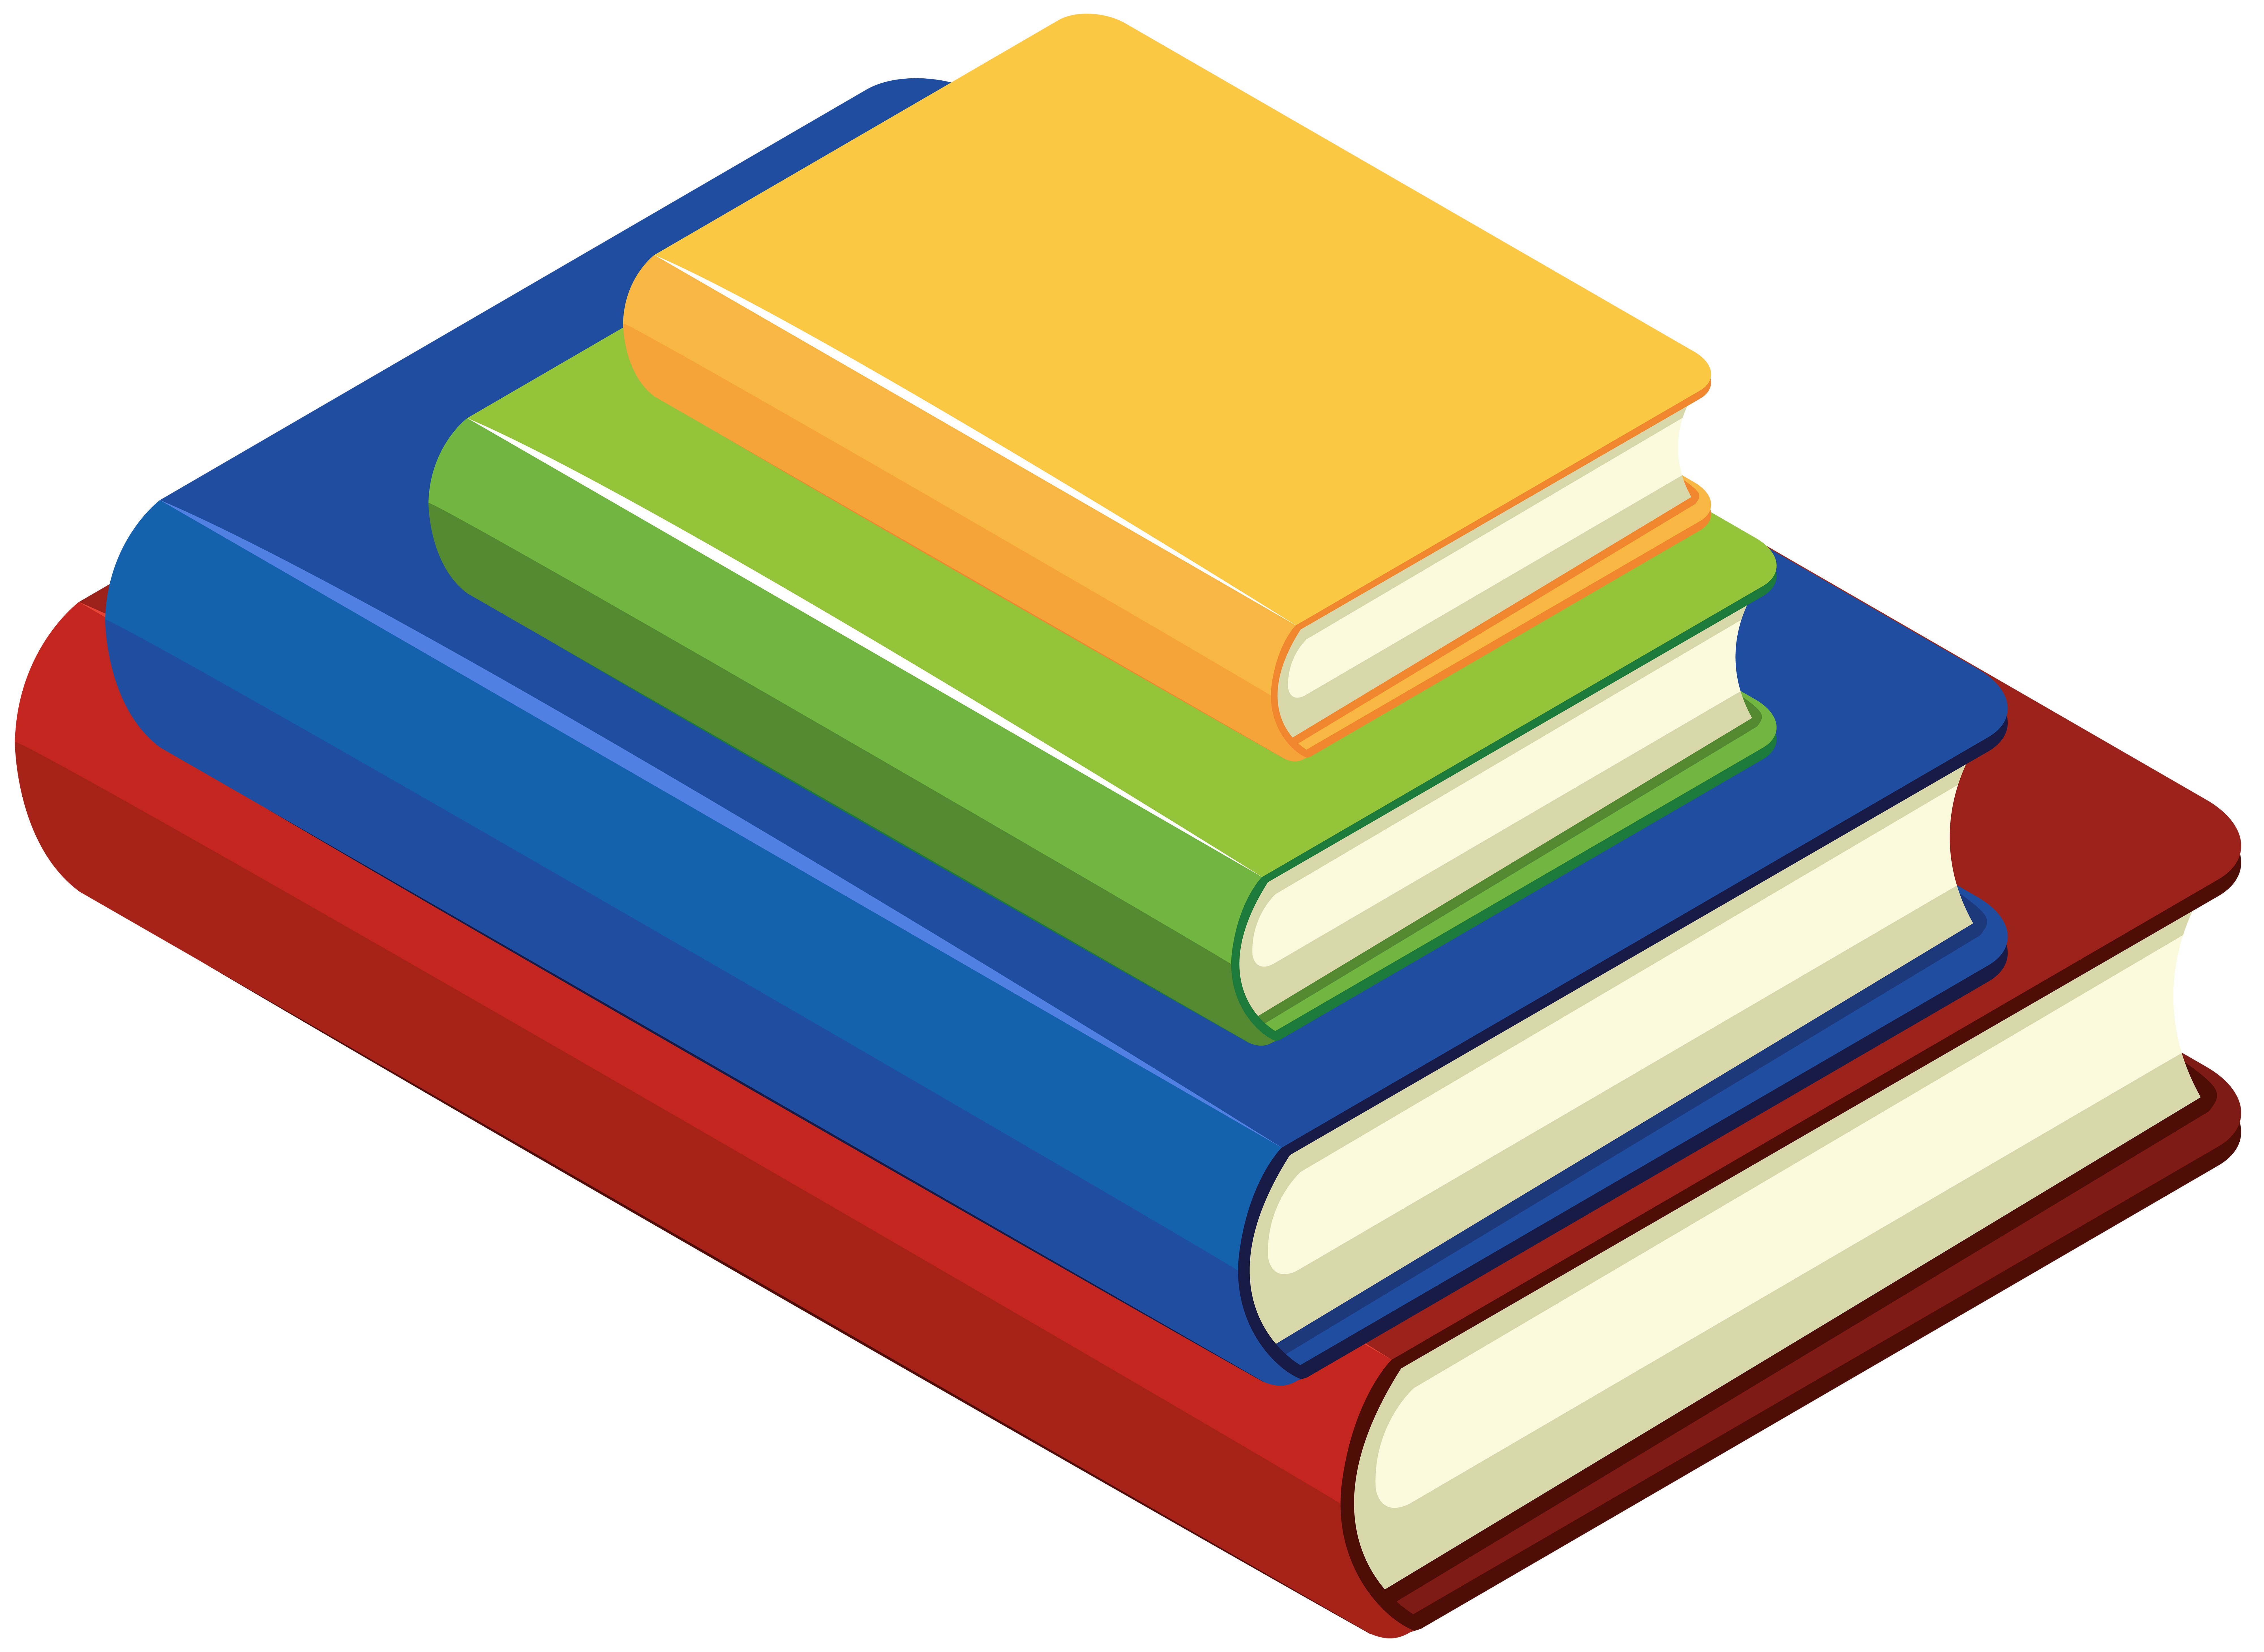 Books Transparent Image.